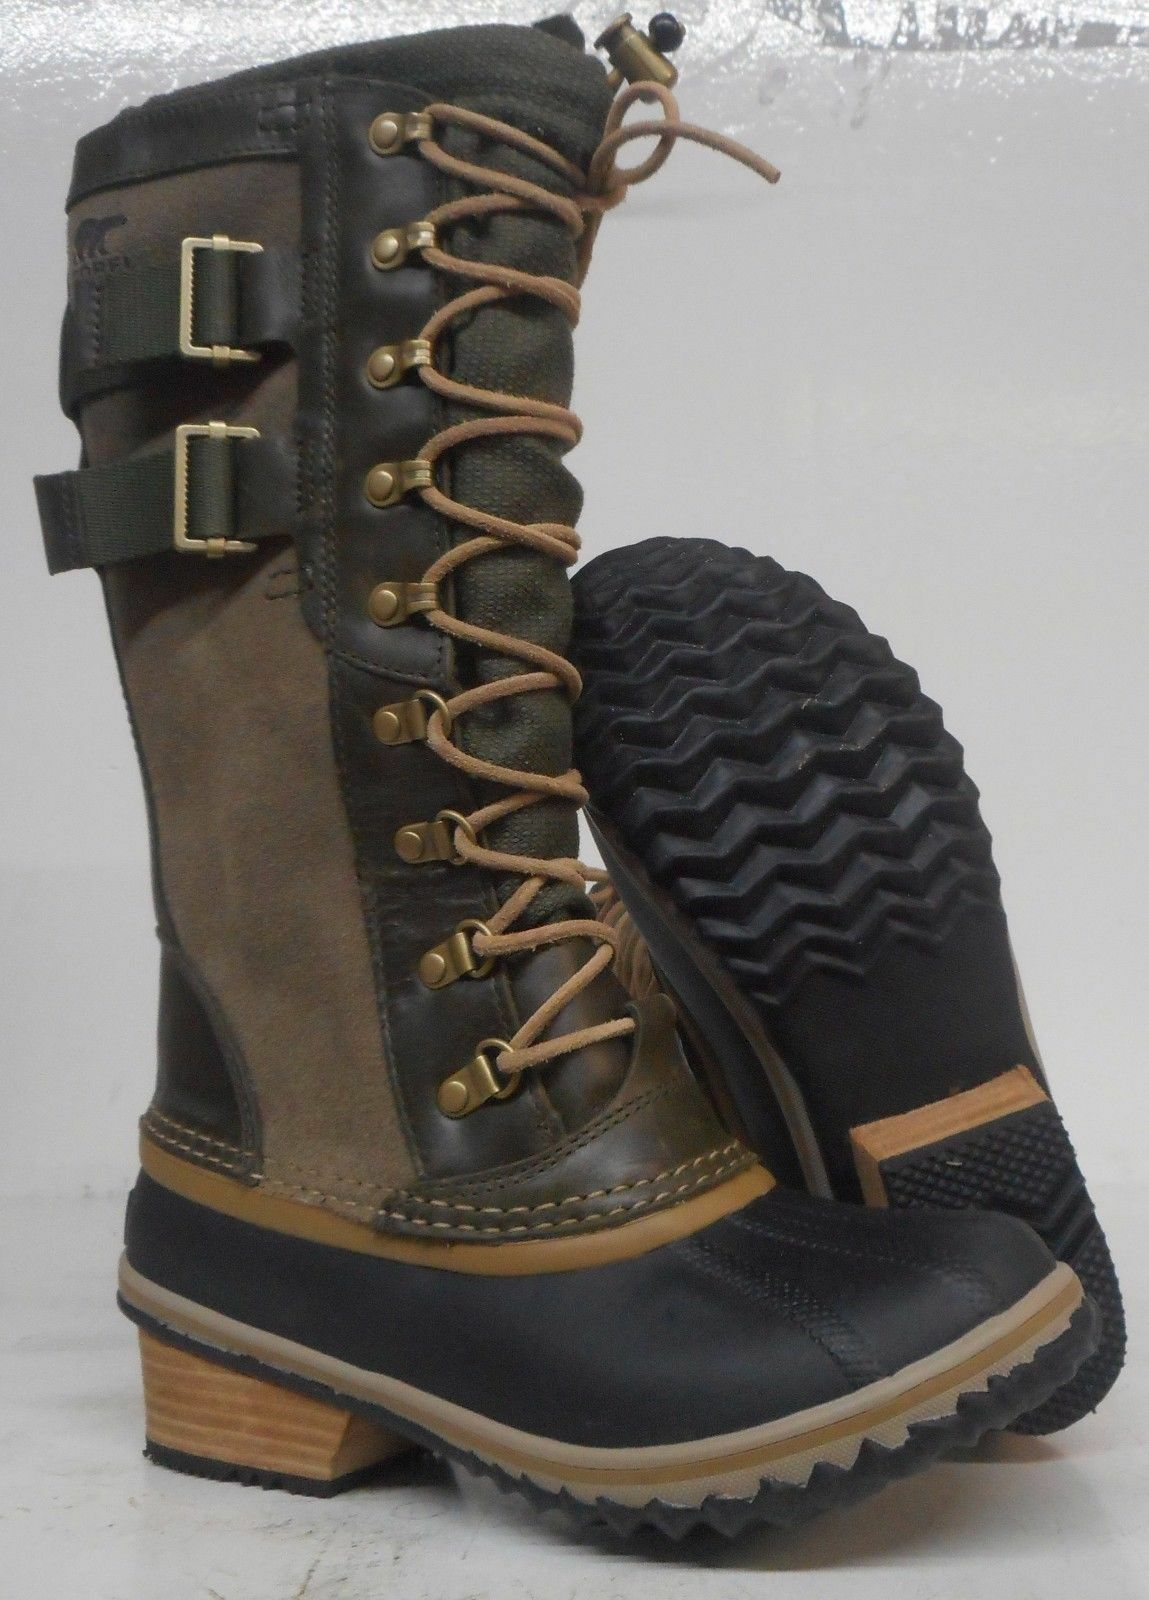 Sorel Donna Conquest Carly II Snow Boot 5.5 Waterproof Peatmoss Glare Waterproof 5.5 Pelle 217c56